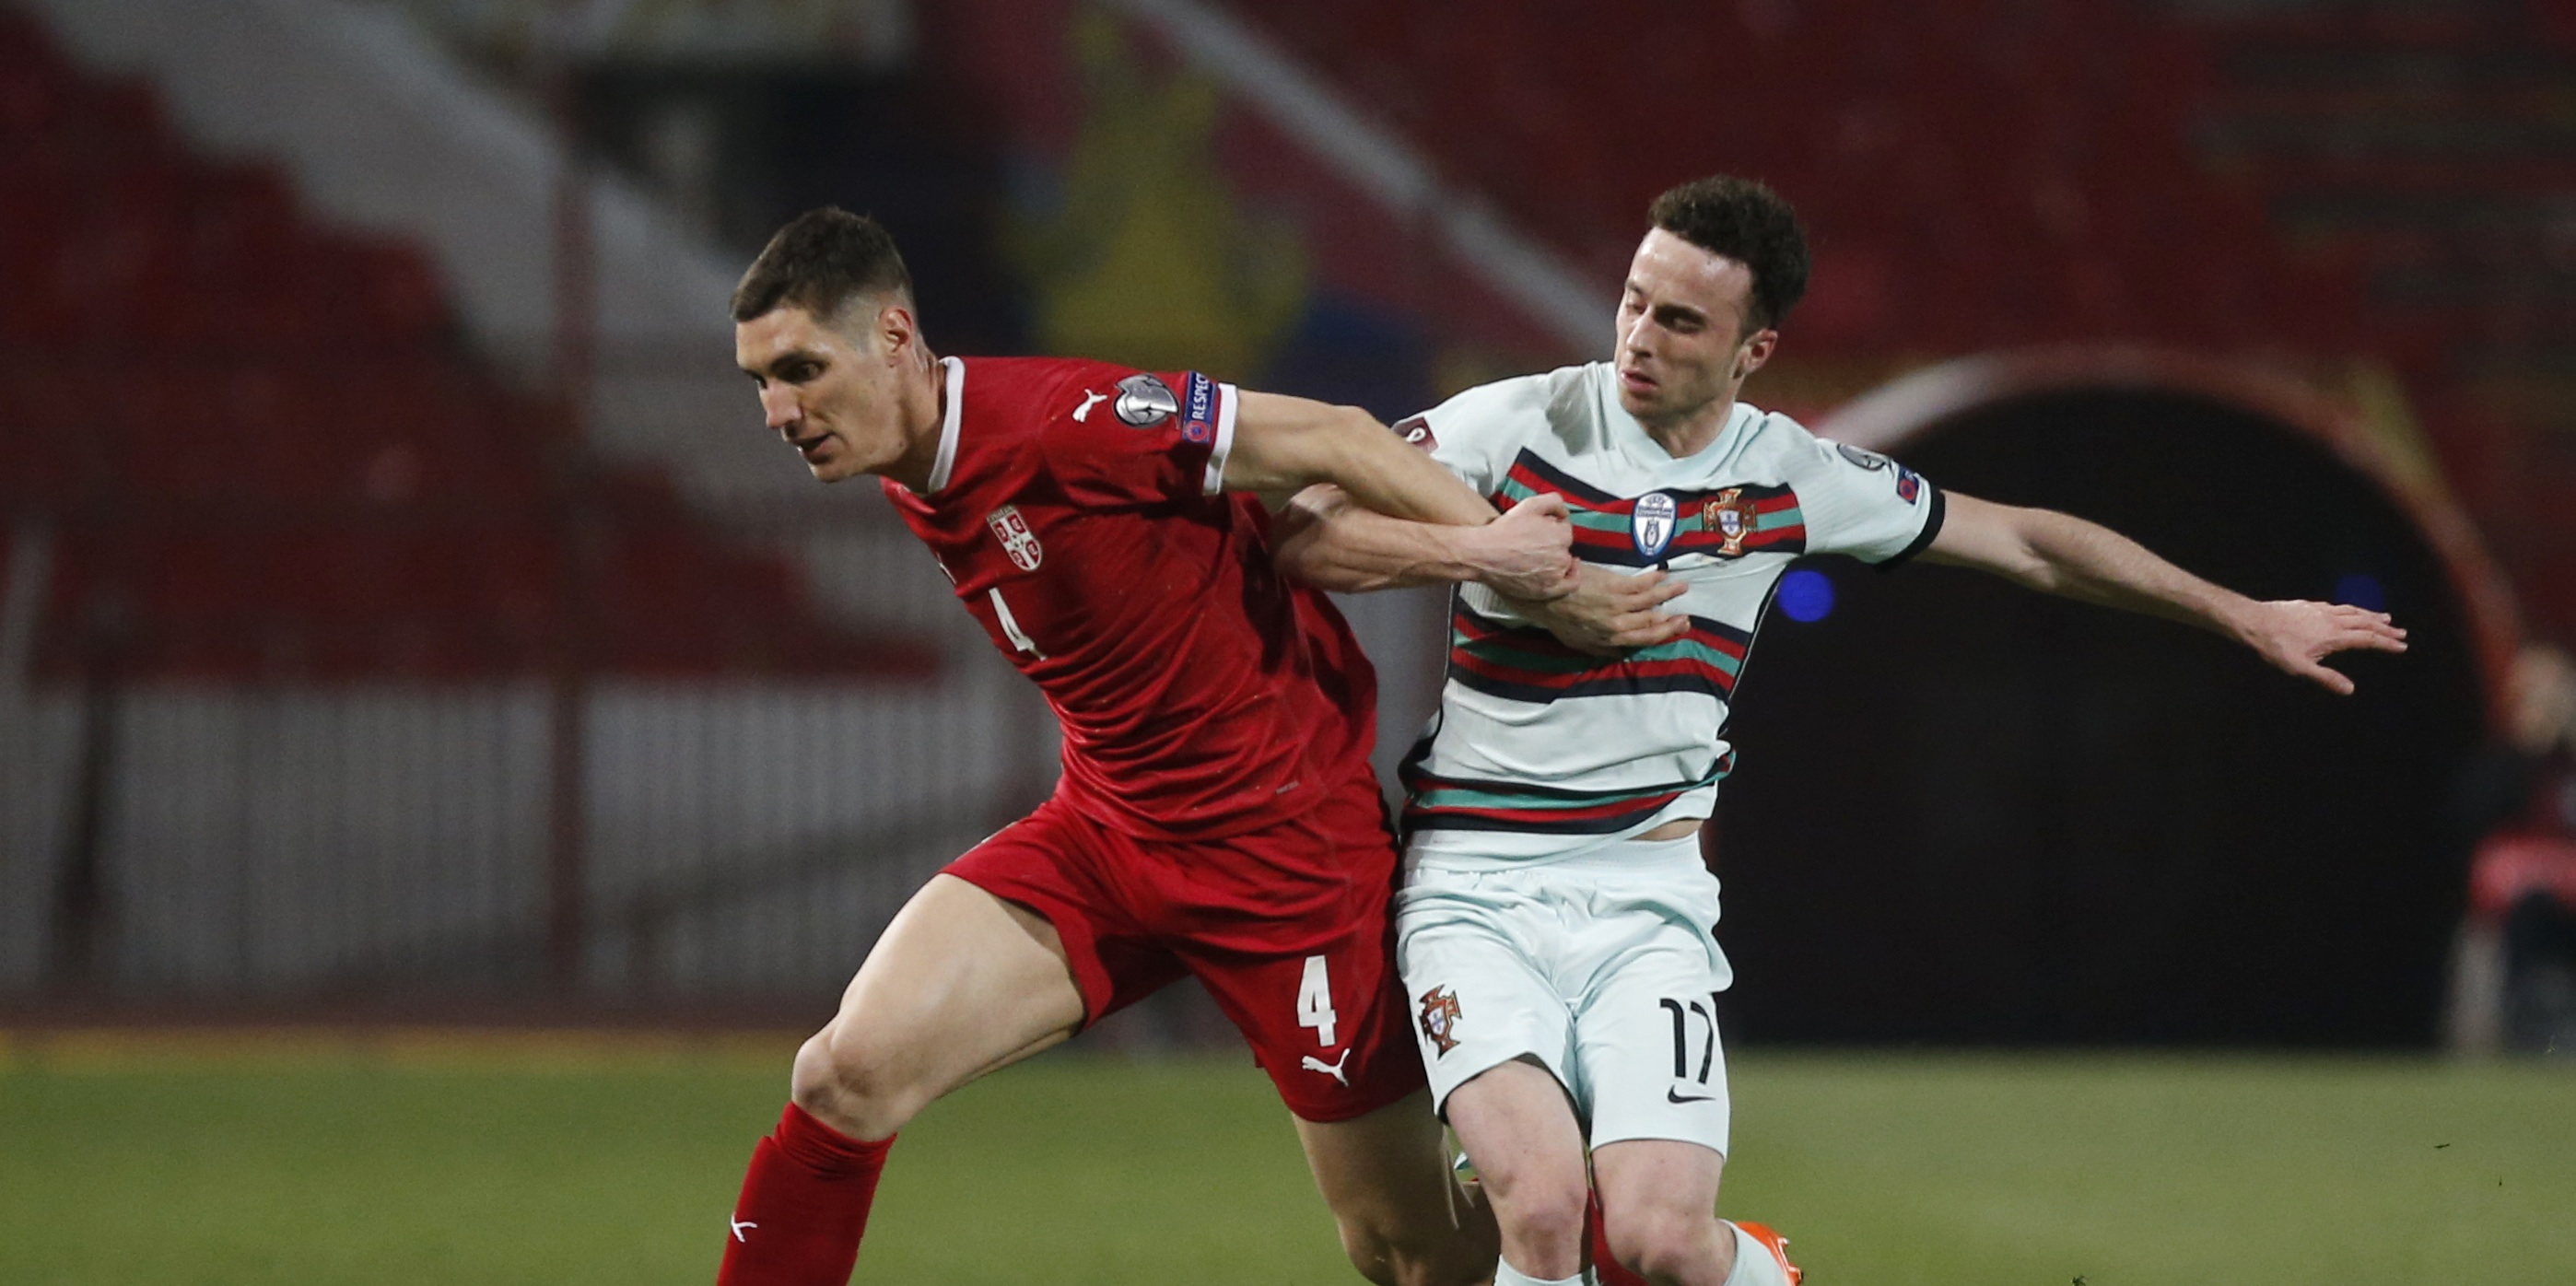 Liverpool may not move for €28m defender after dismal international display v Jota's Portugal, claims Corriere Fiorentino